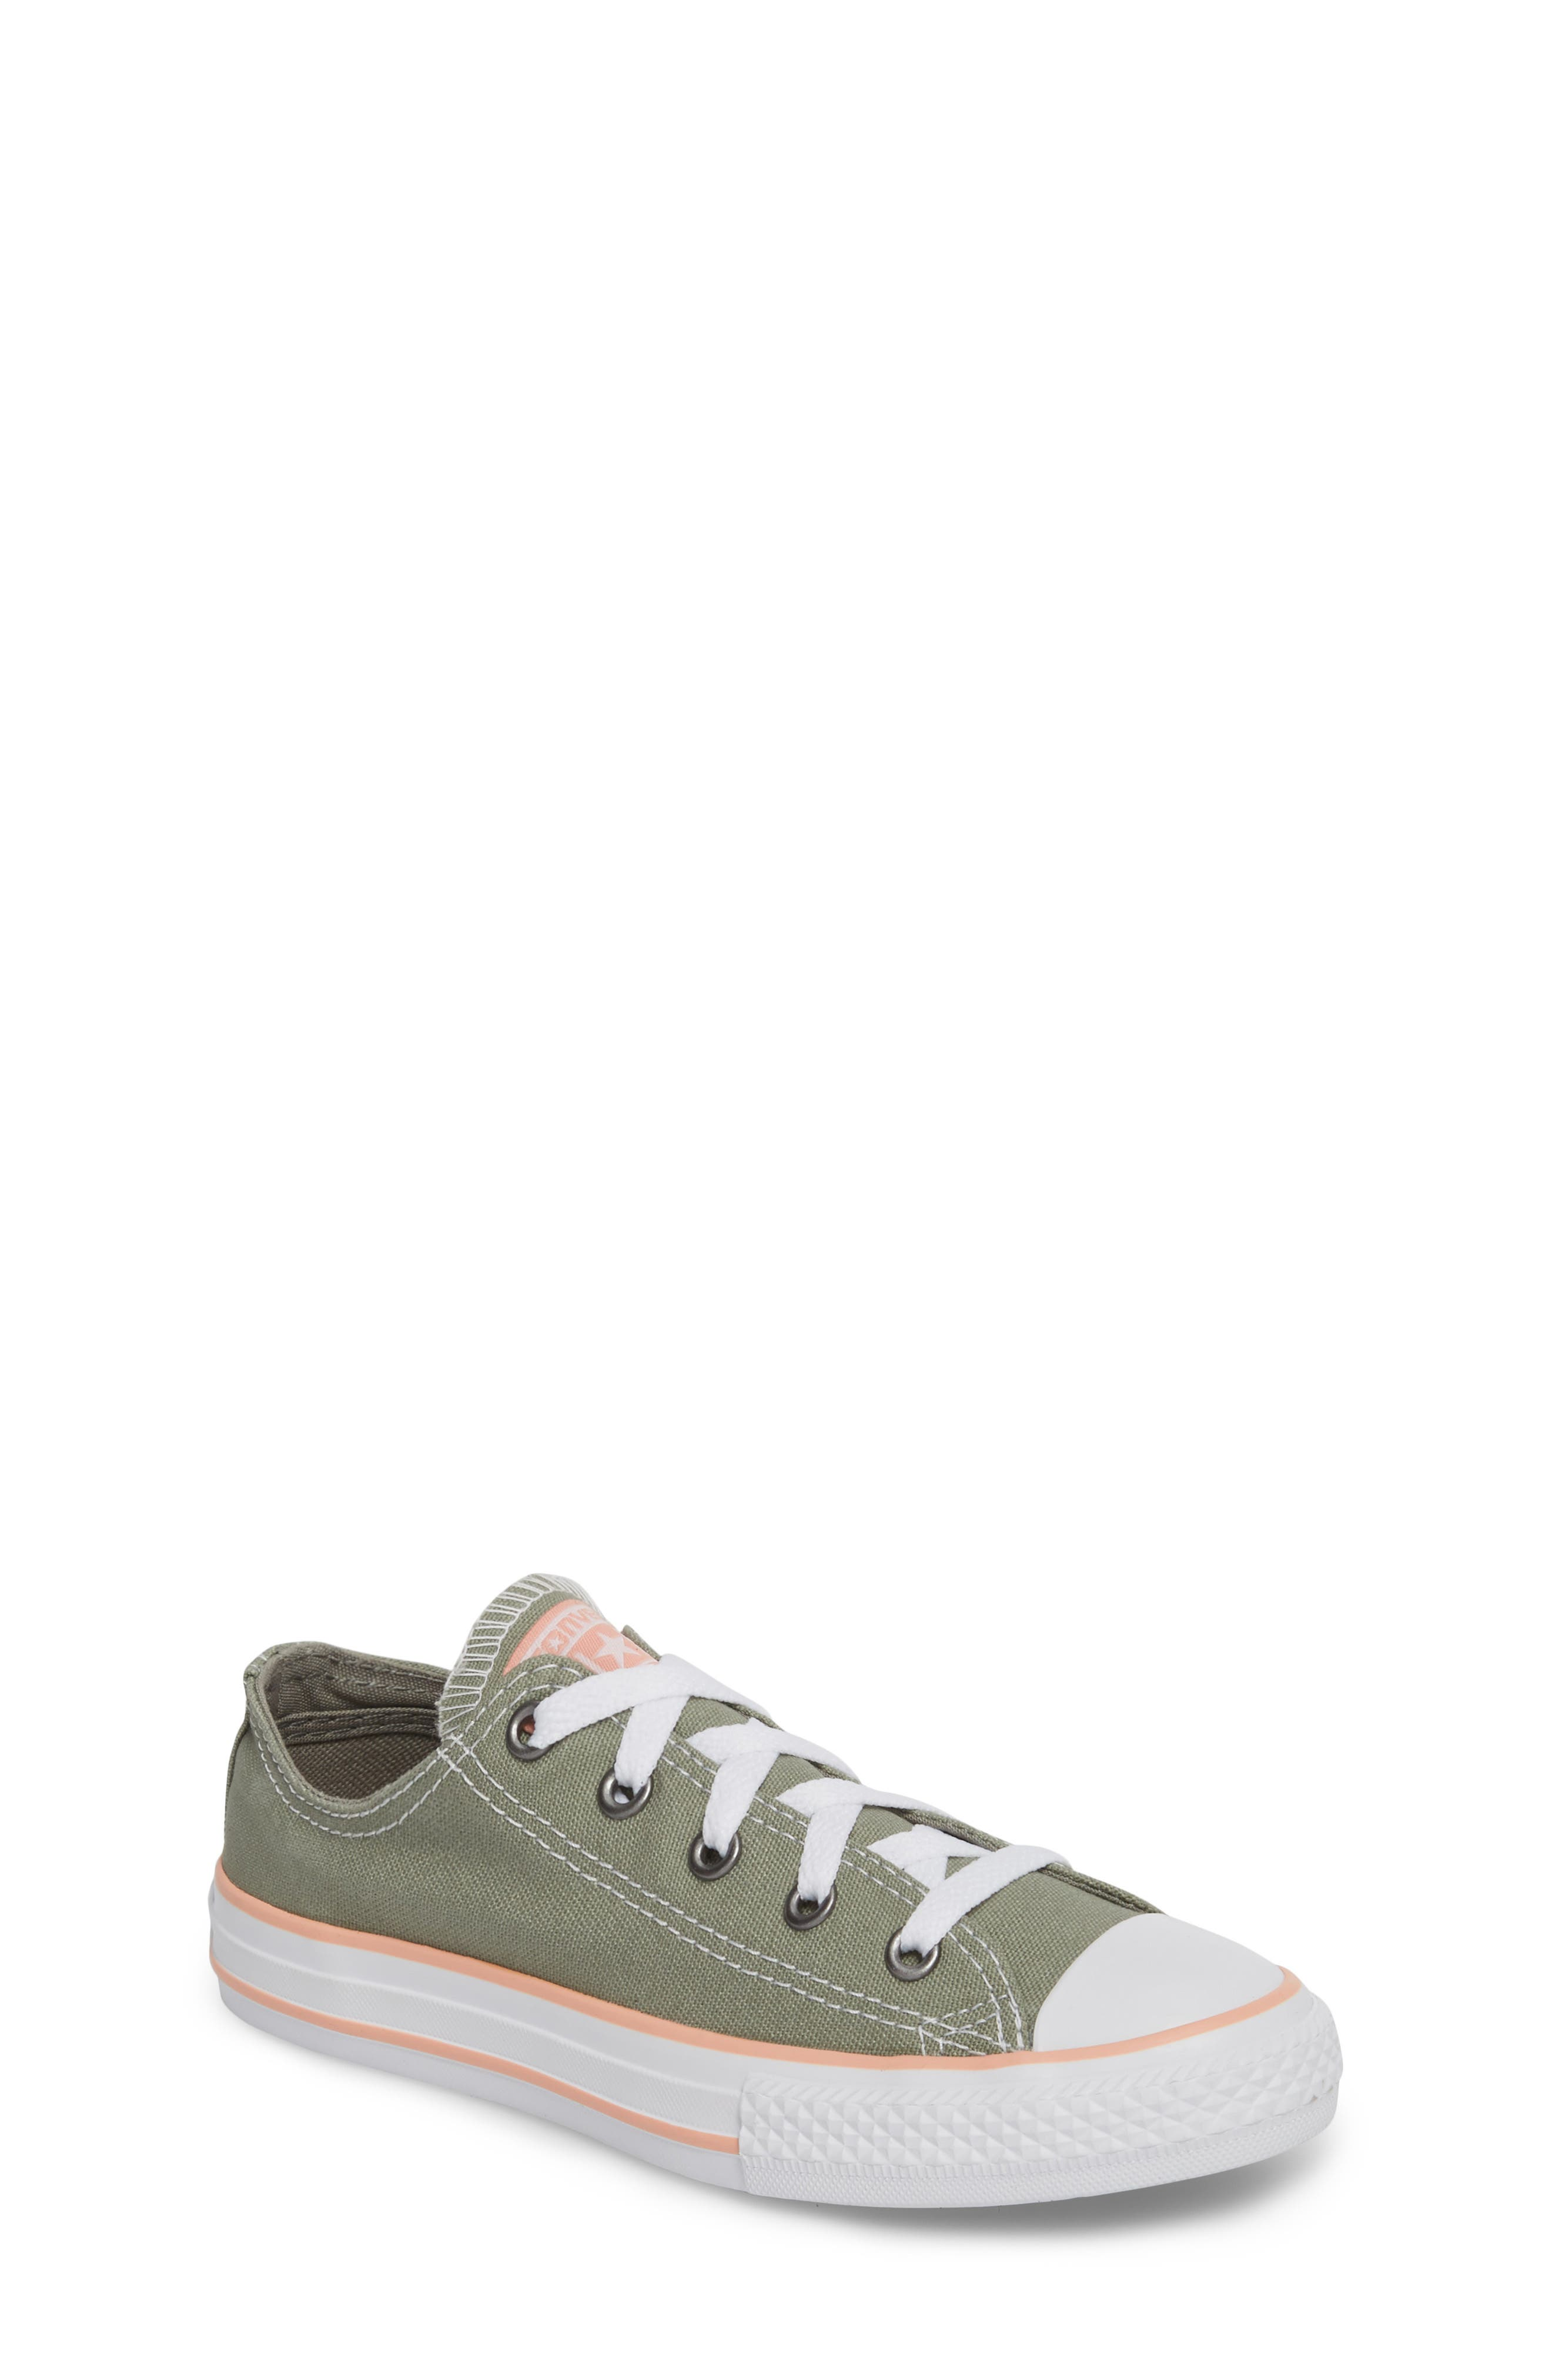 Chuck Taylor<sup>®</sup> All Star<sup>®</sup> Low Top Sneaker,                             Main thumbnail 1, color,